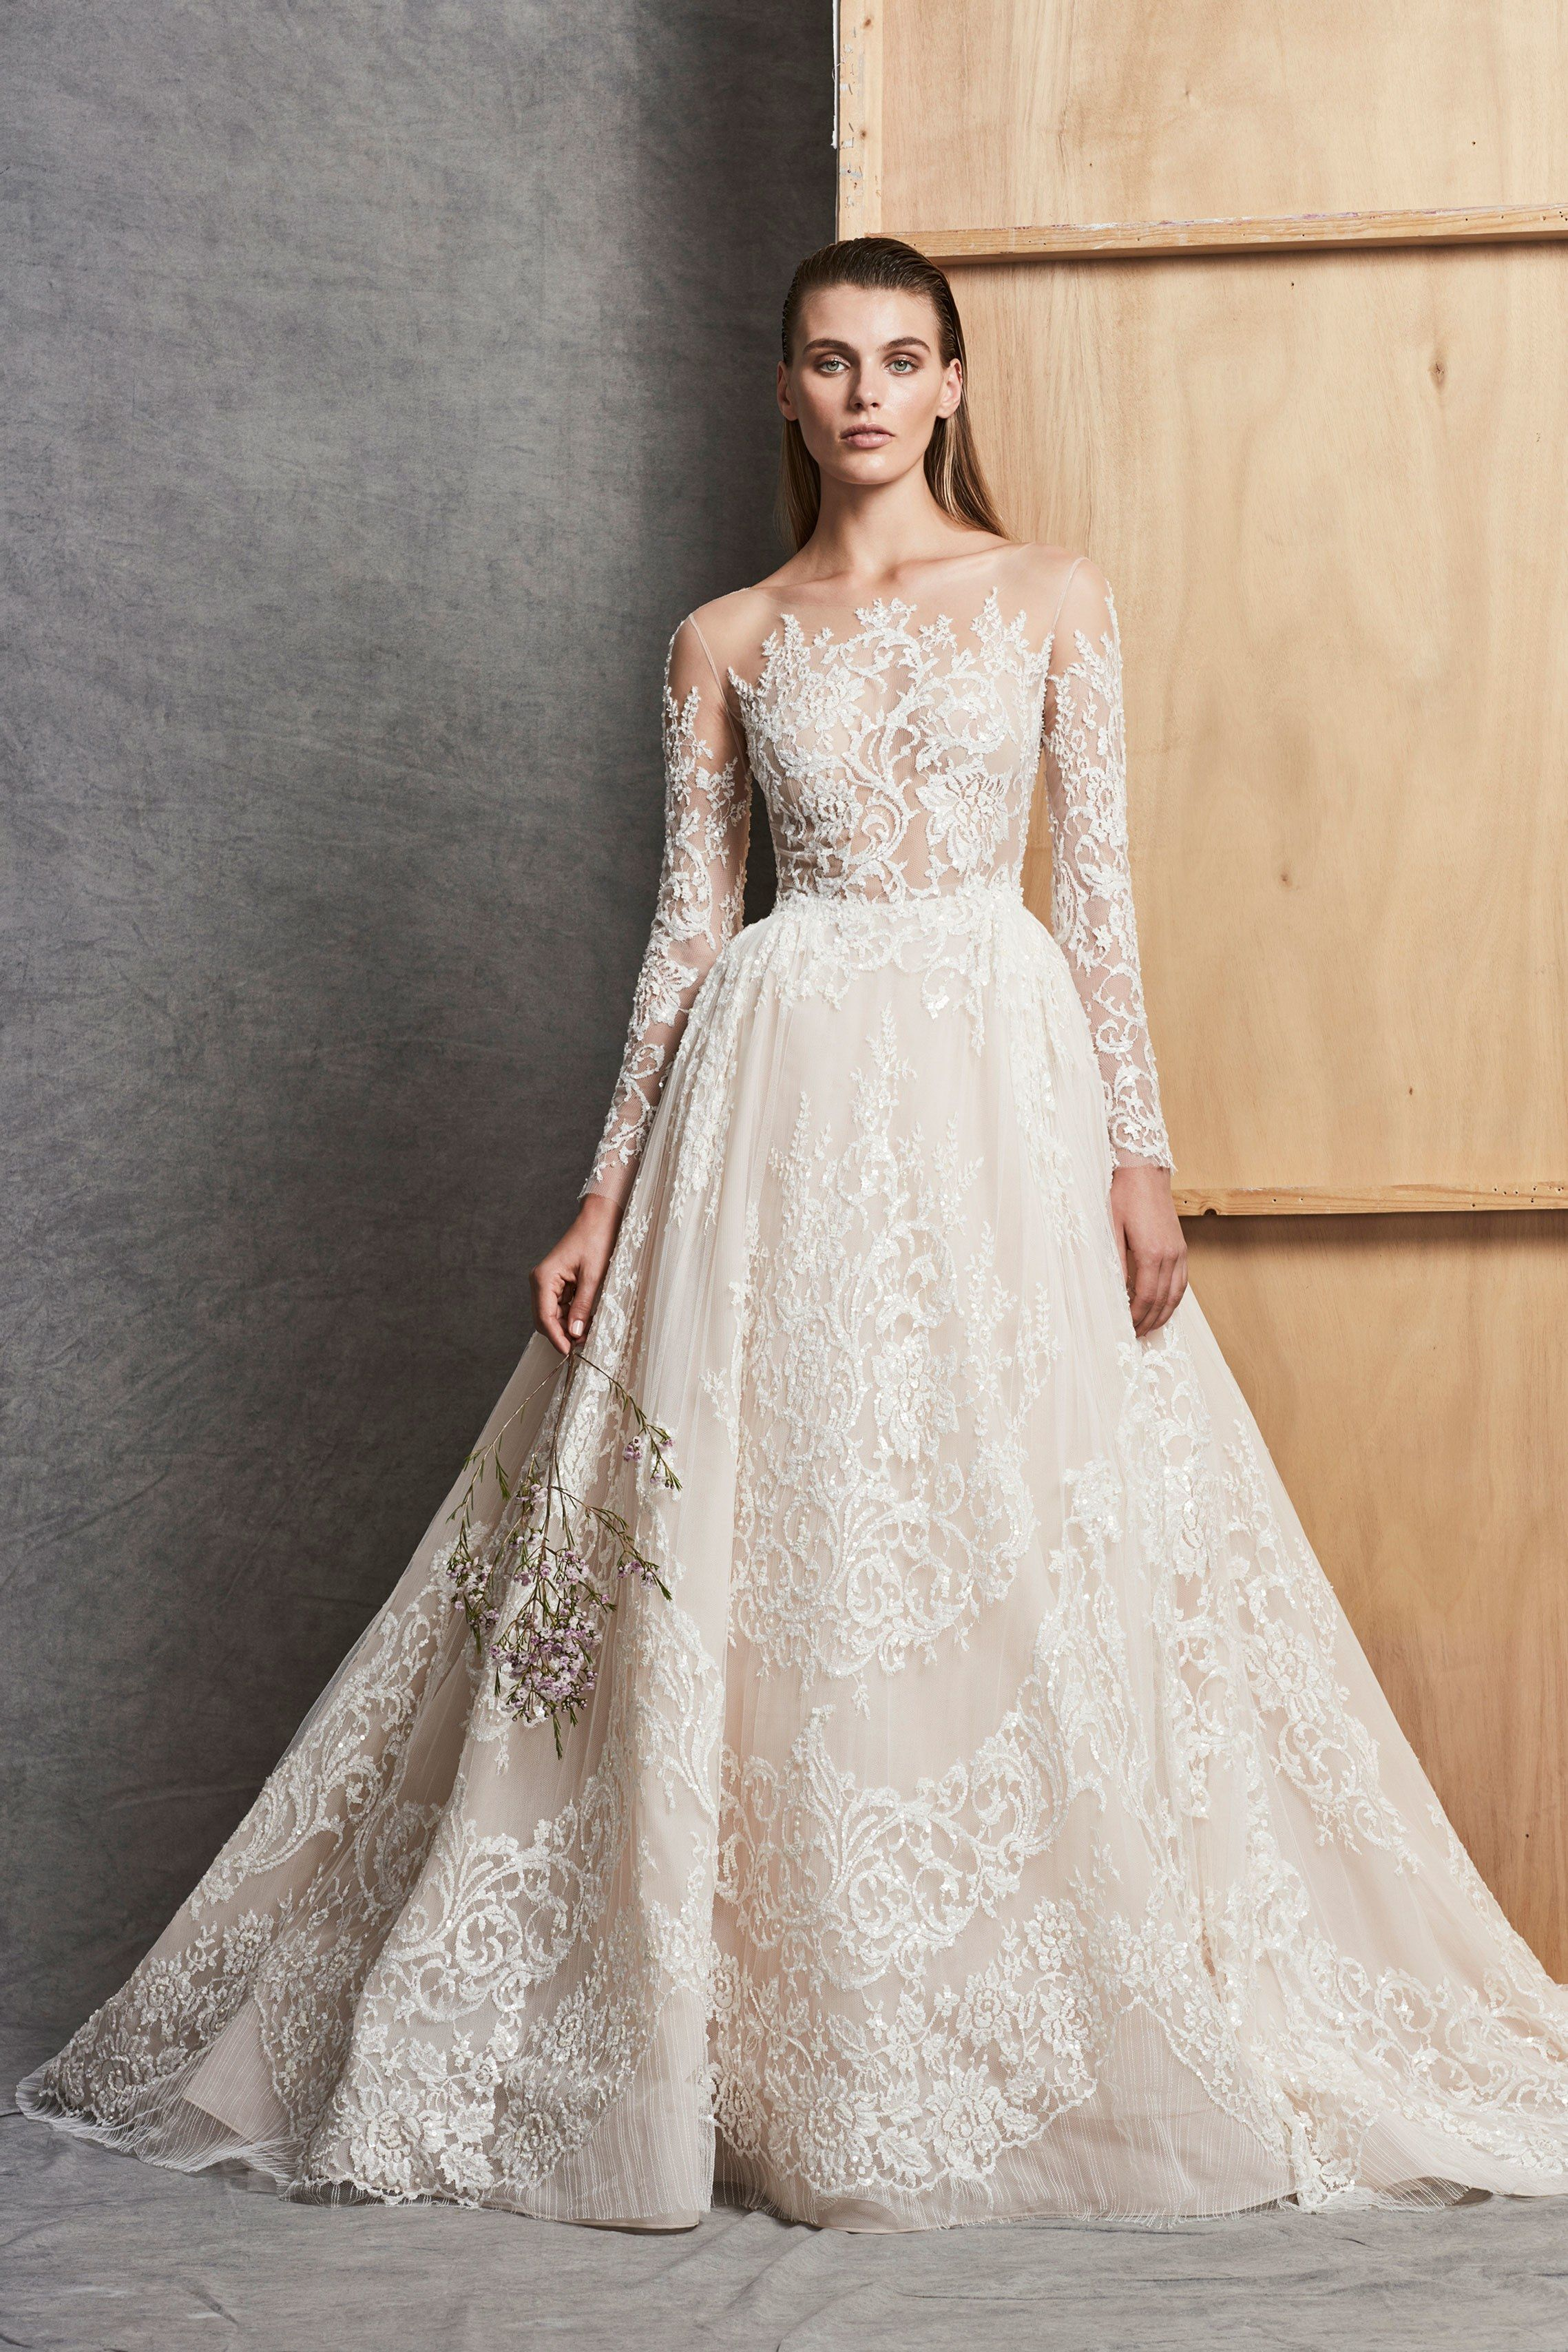 Zuhair Murad Bridal Fall 2018 Collection Photos Vogue Fashionwedding Dress